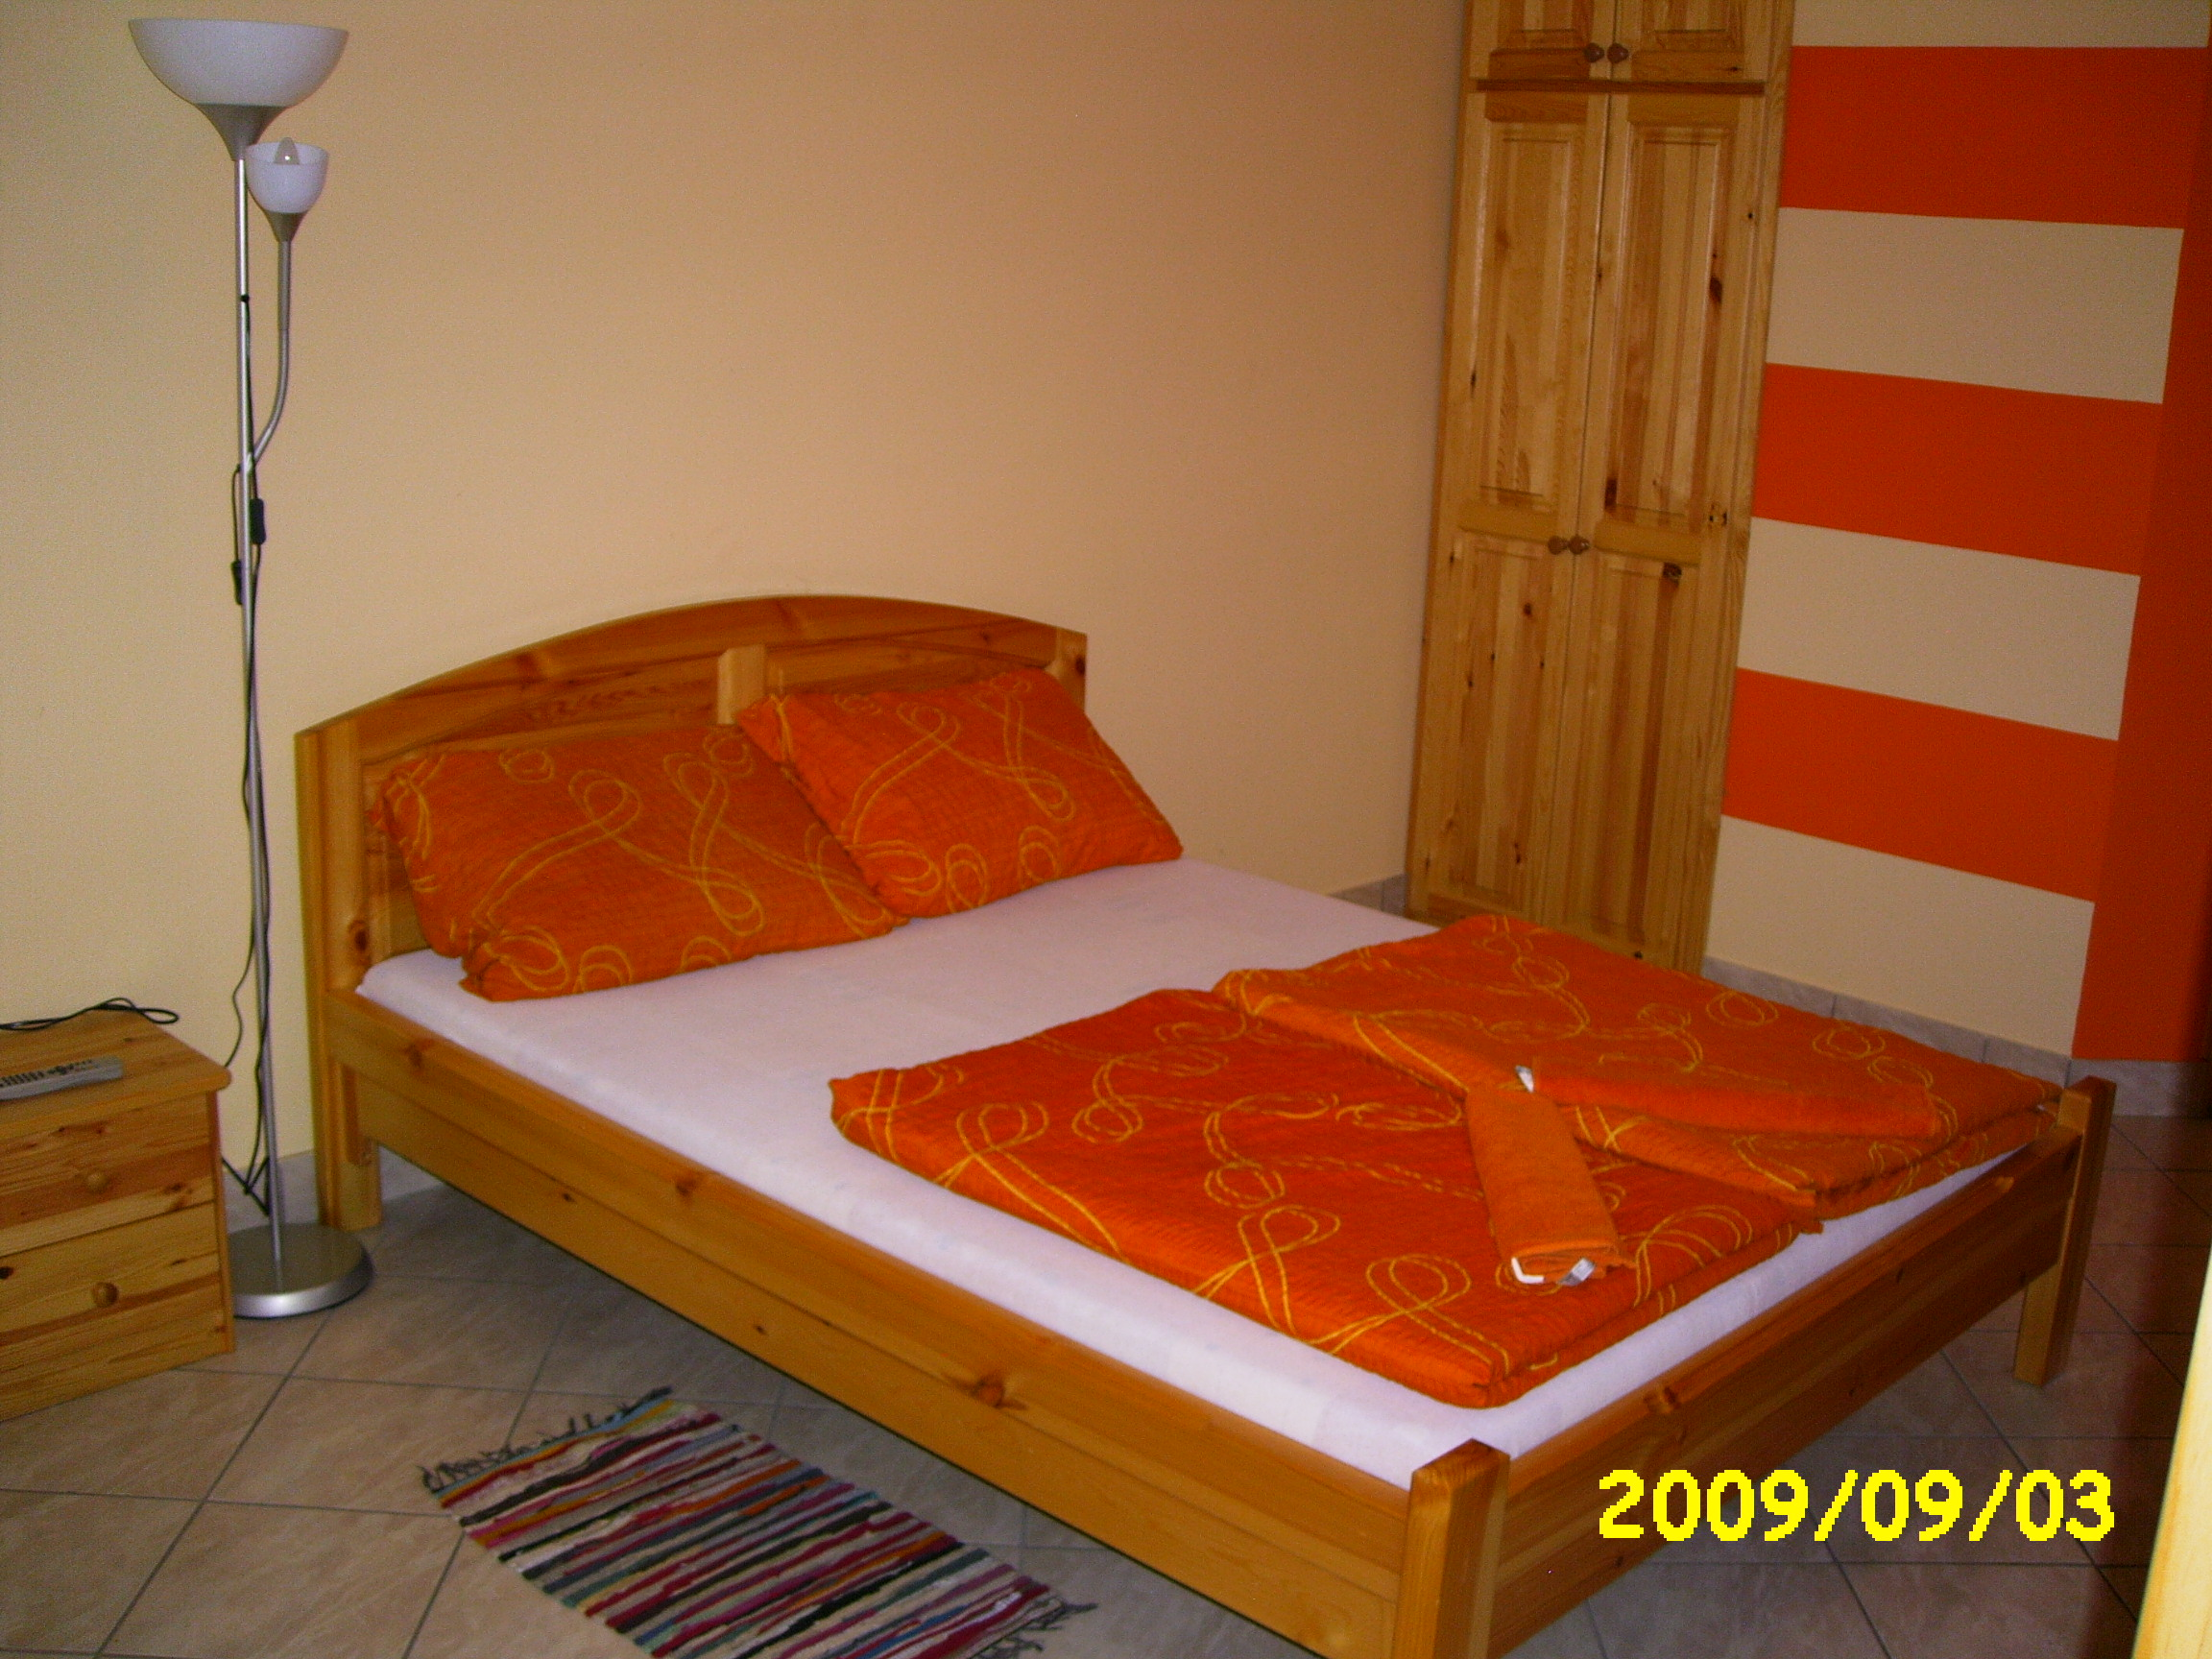 Studio 2 fs apartman 1 hltrrel - 2f3dfe94-4010-72f2-74a7-b66a7dc02d06